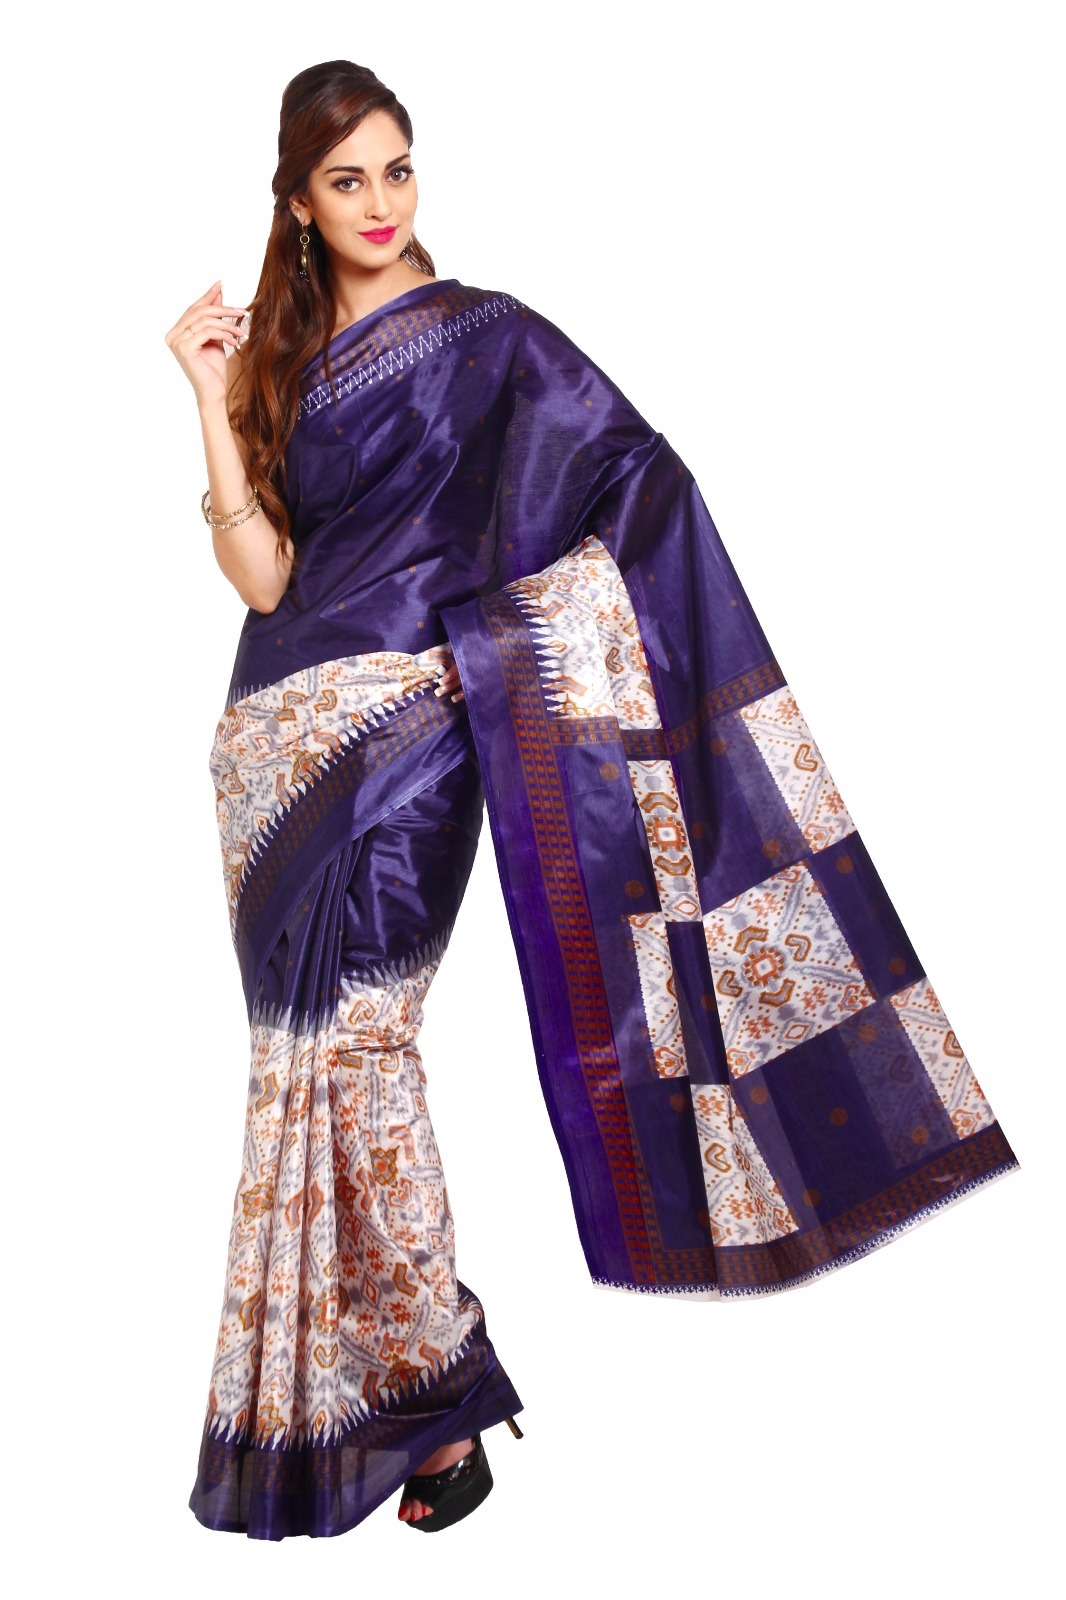 Buy Fashion Founder Designer Bollywood Style Printed Tapeta Saree Online In India 83675802